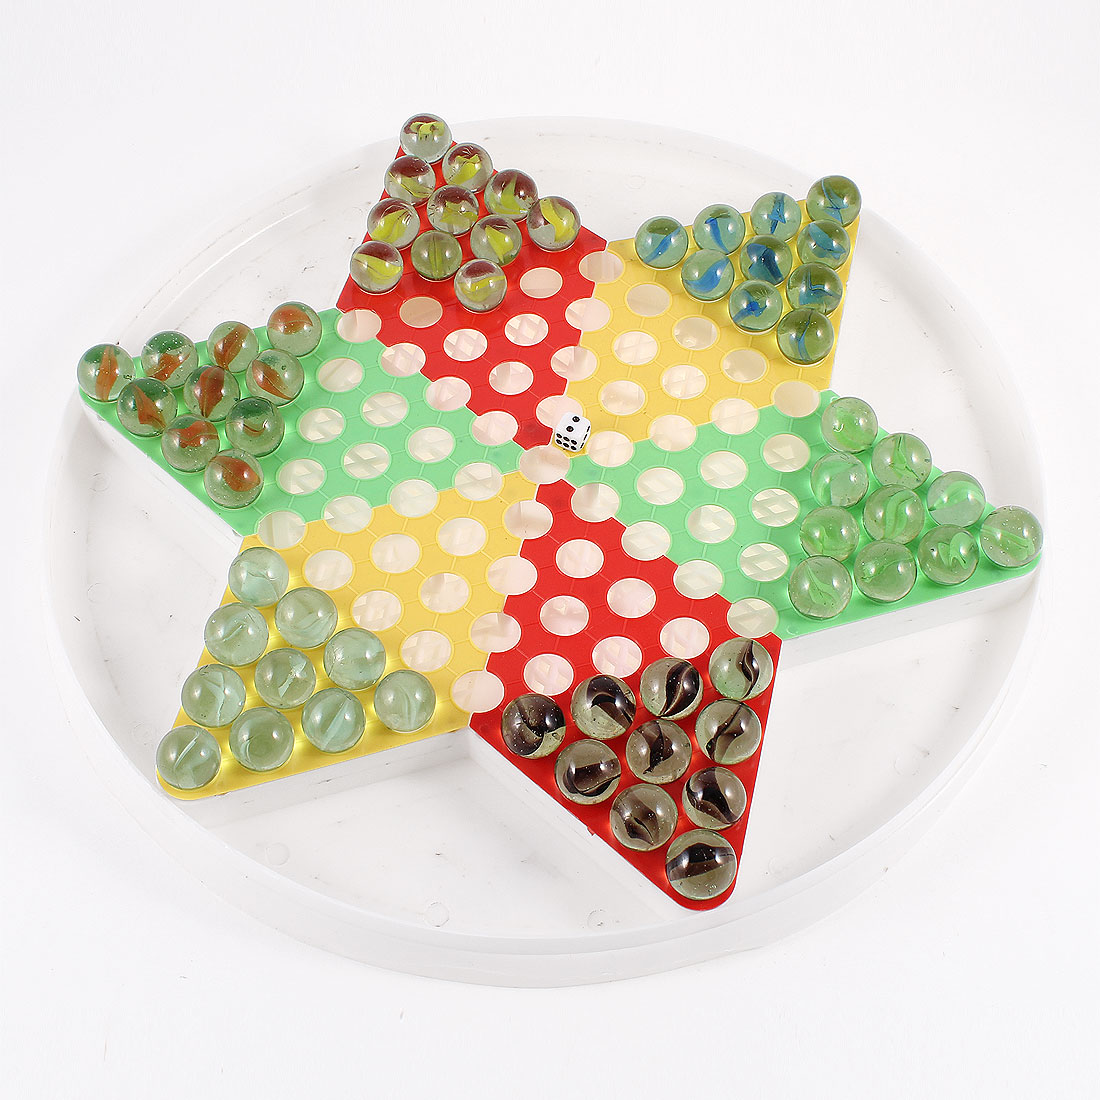 Child Plastic Board Colorful Glass Chessmen Chinese Checkers Intelligent Toy